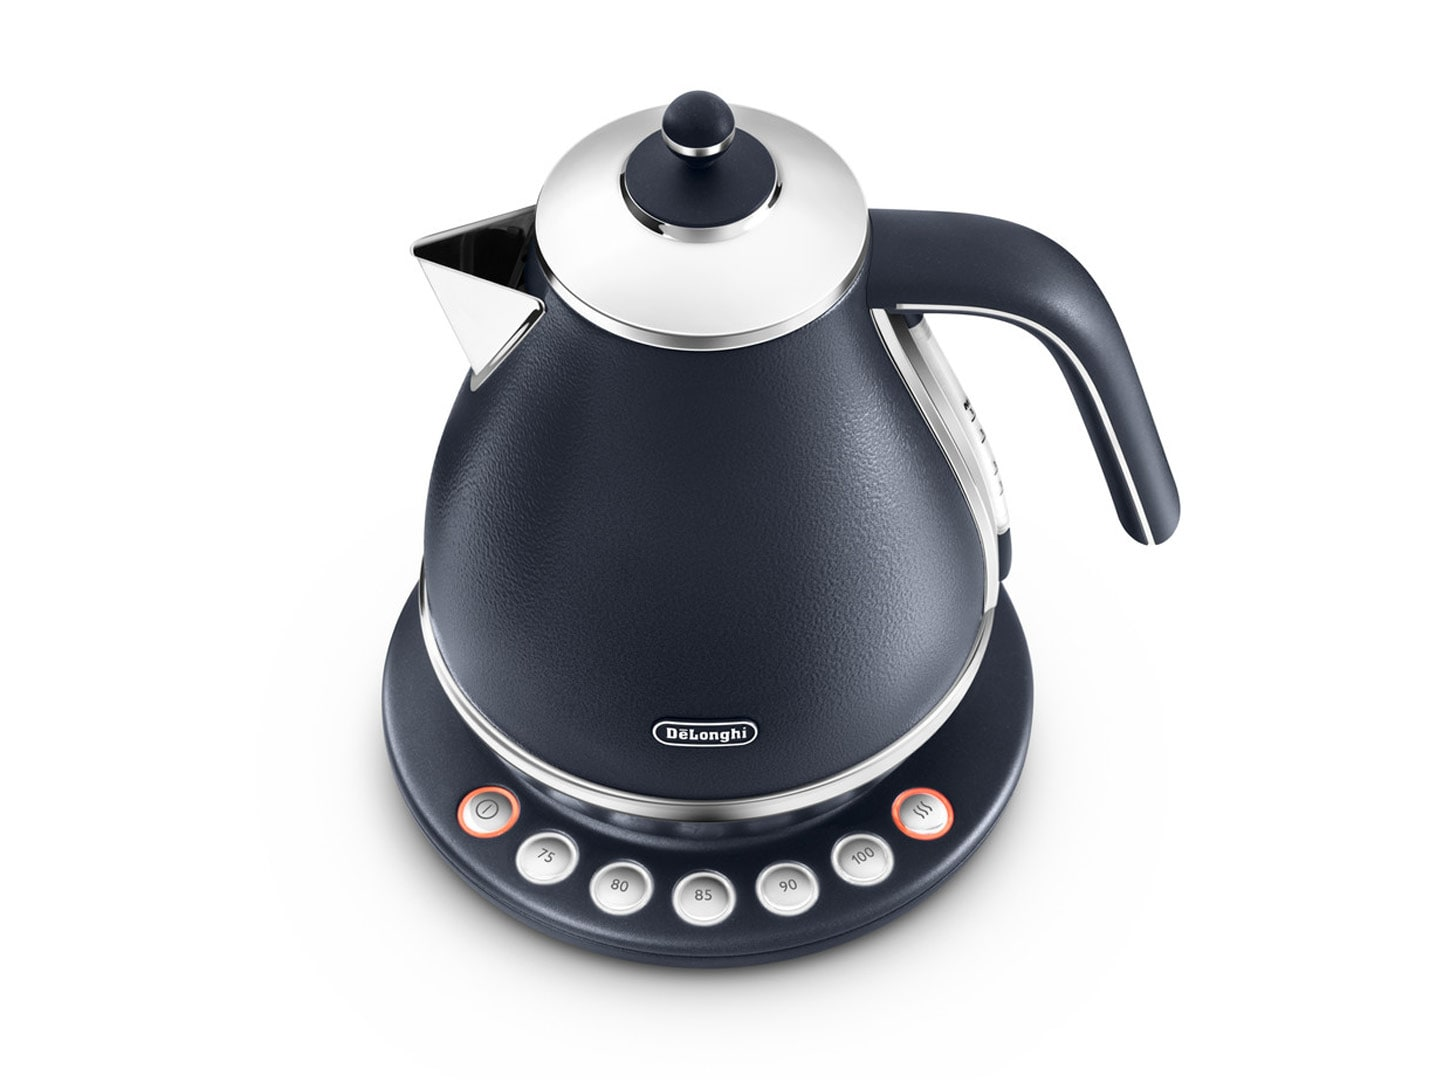 DeLonghi Icona Elements Digital Kettle Ocean Blue KBOE 2011.BL